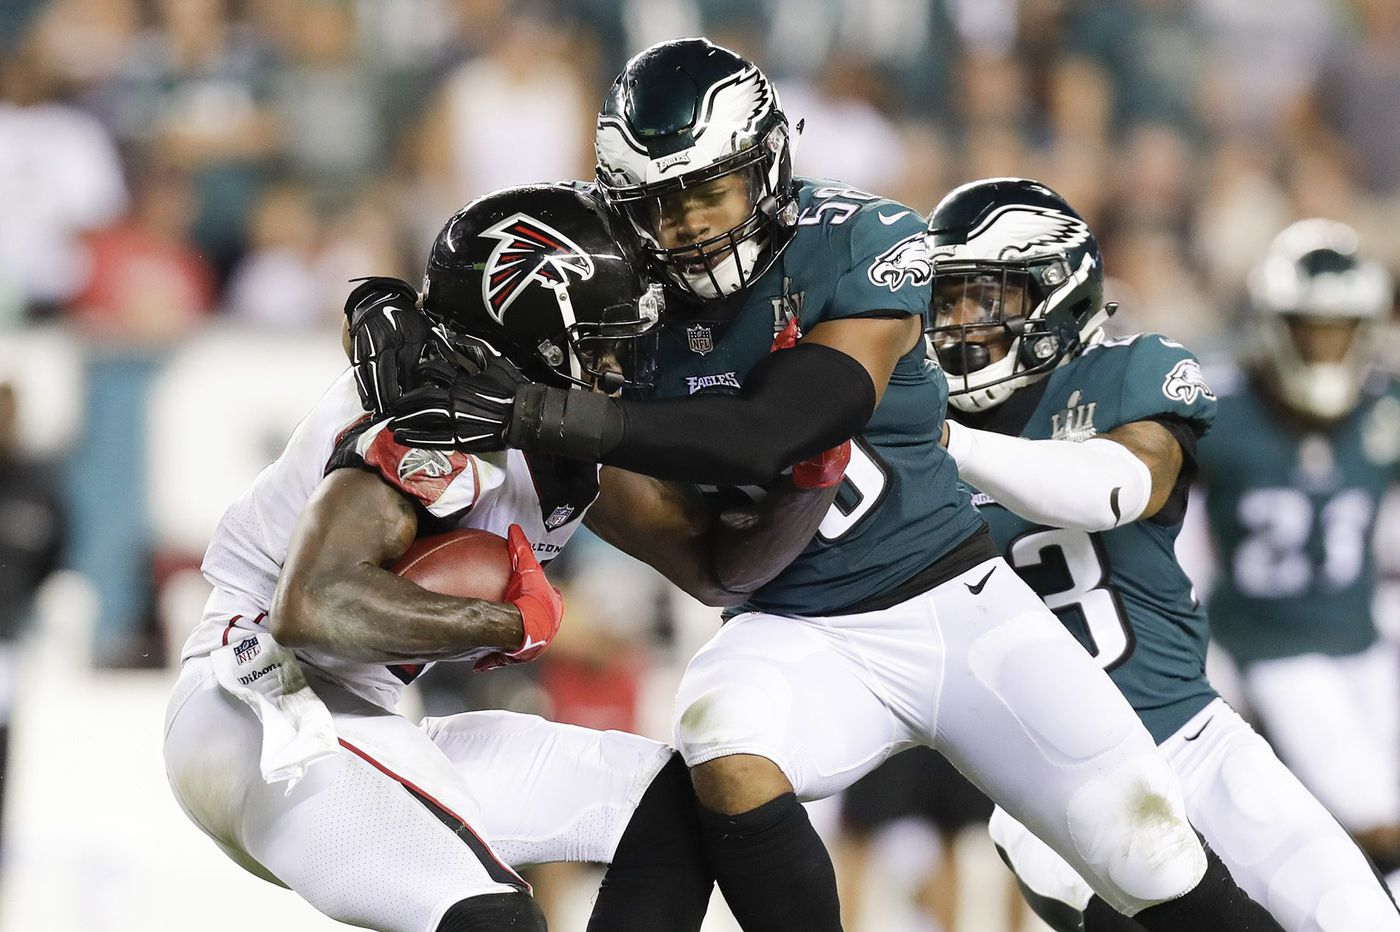 Eagles defense will try to cool off Tampa Bay's offense after 'eye-opening' performance